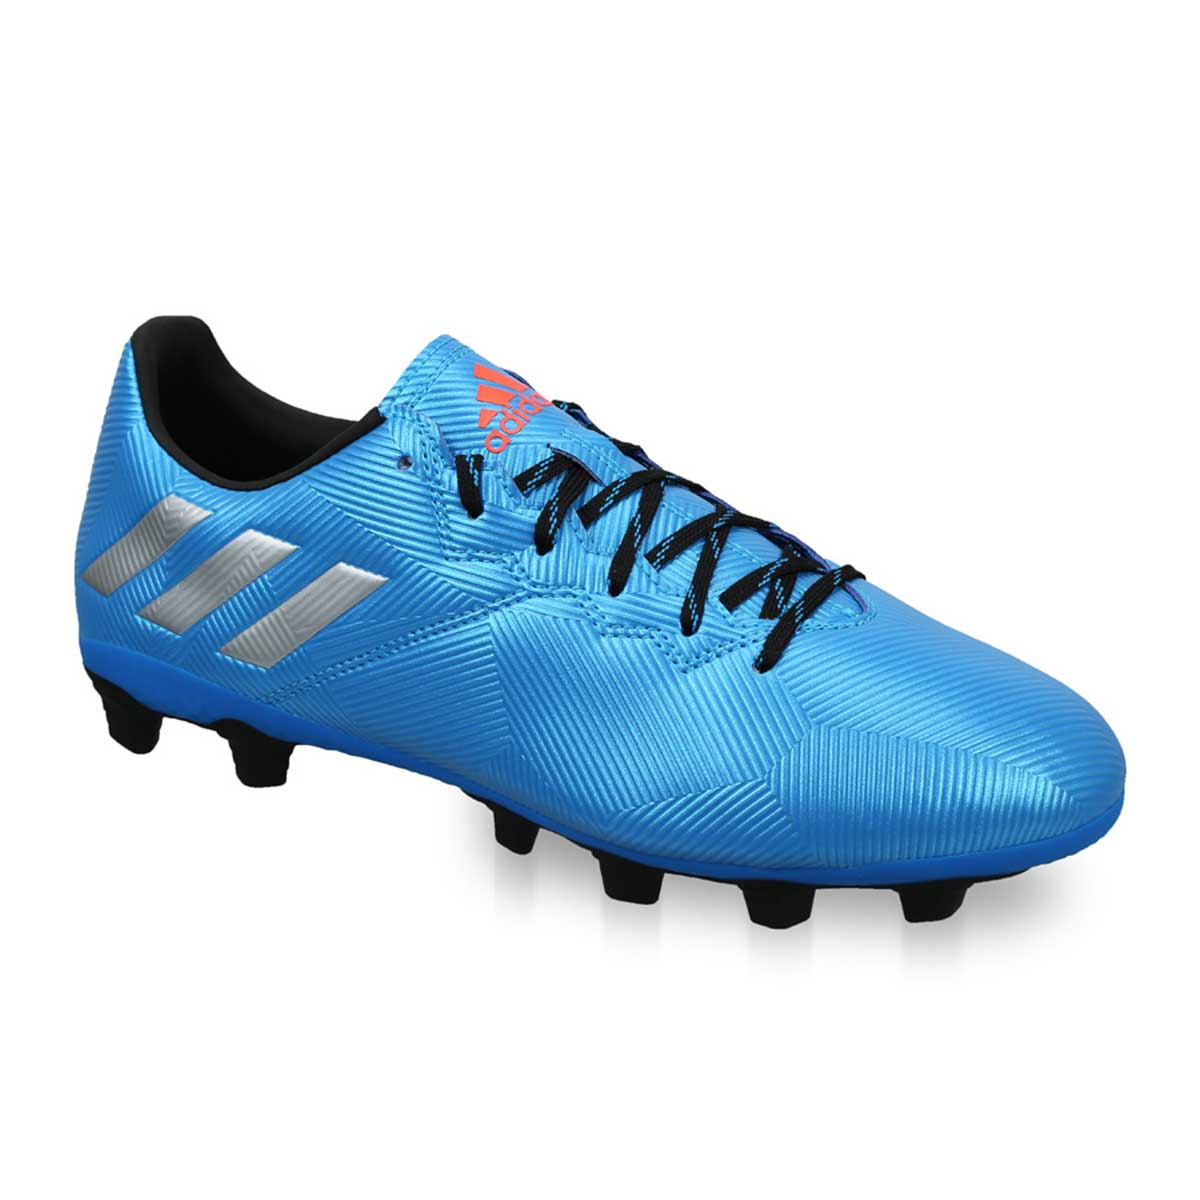 07c9c6fc418 Buy Adidas Messi 16.4 FXG Football Shoes (Blue Silver Black) Online